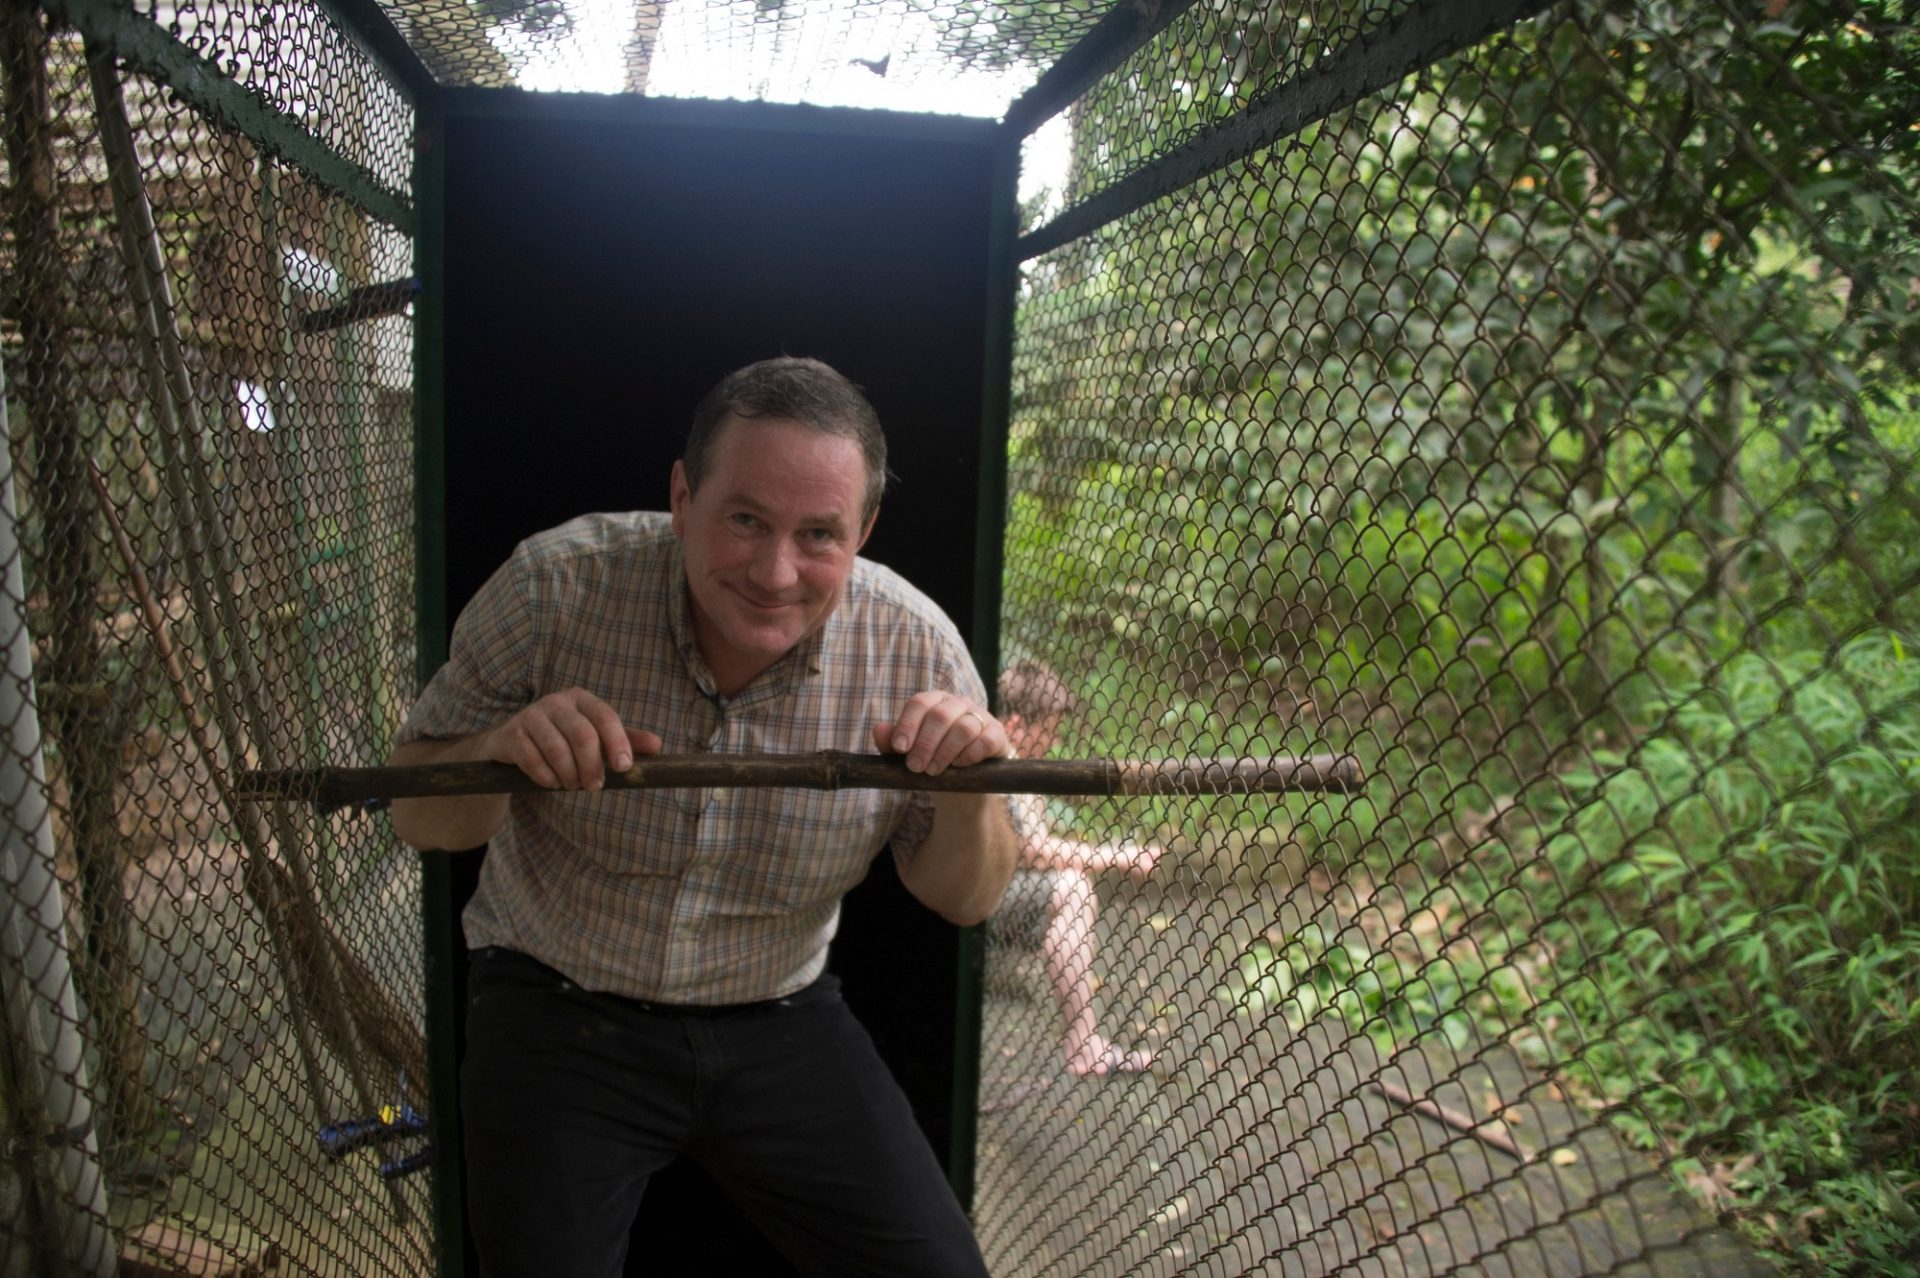 Photo: Joel Sartore poses inside a transfer cage at the Endangered Primate Rescue Center in Cuc Phuong National Park, Vietnam.